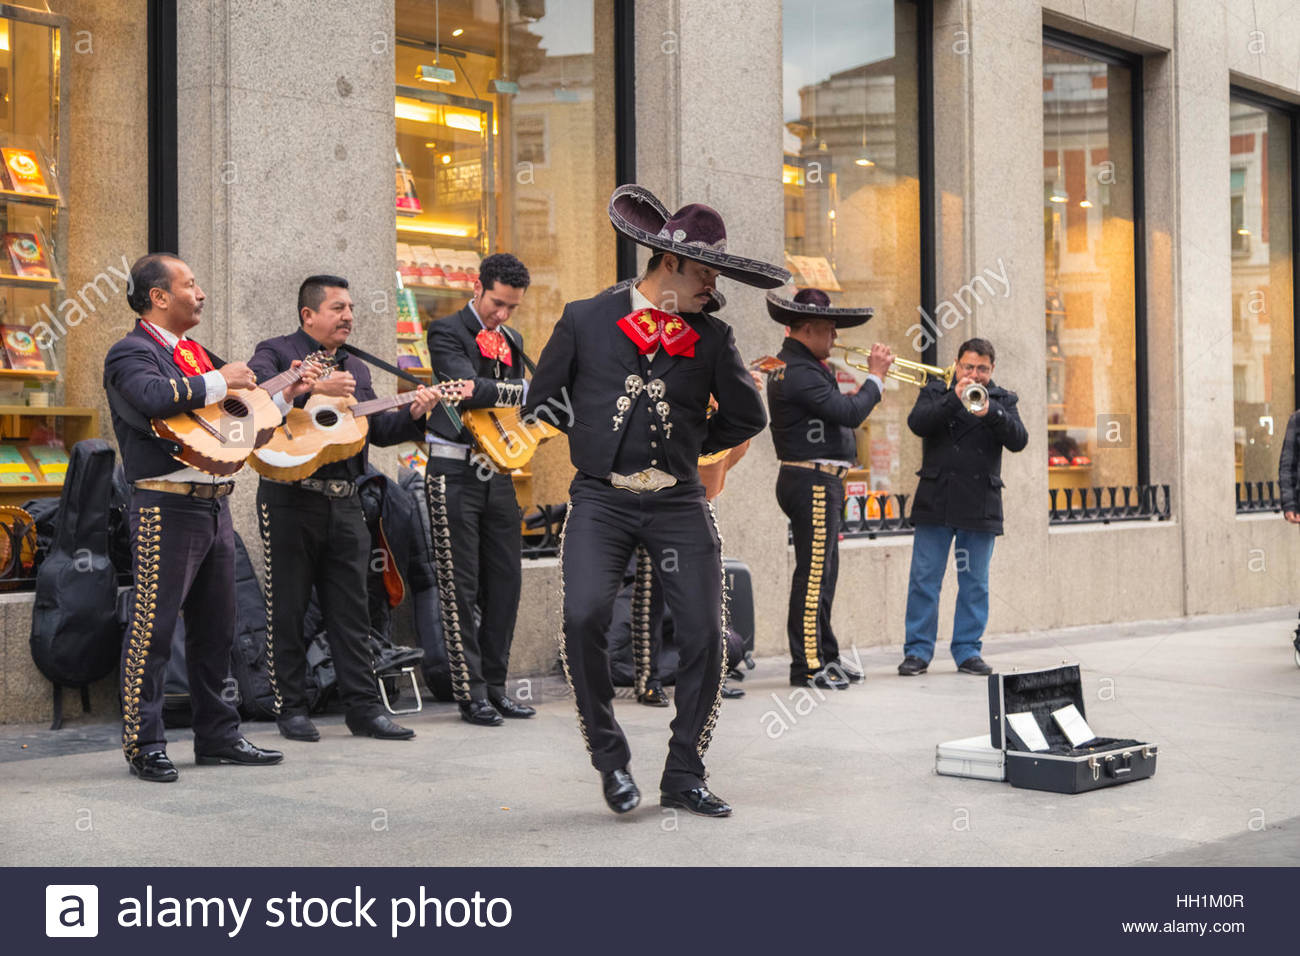 flamenco dance man while musicians play their instruments in the